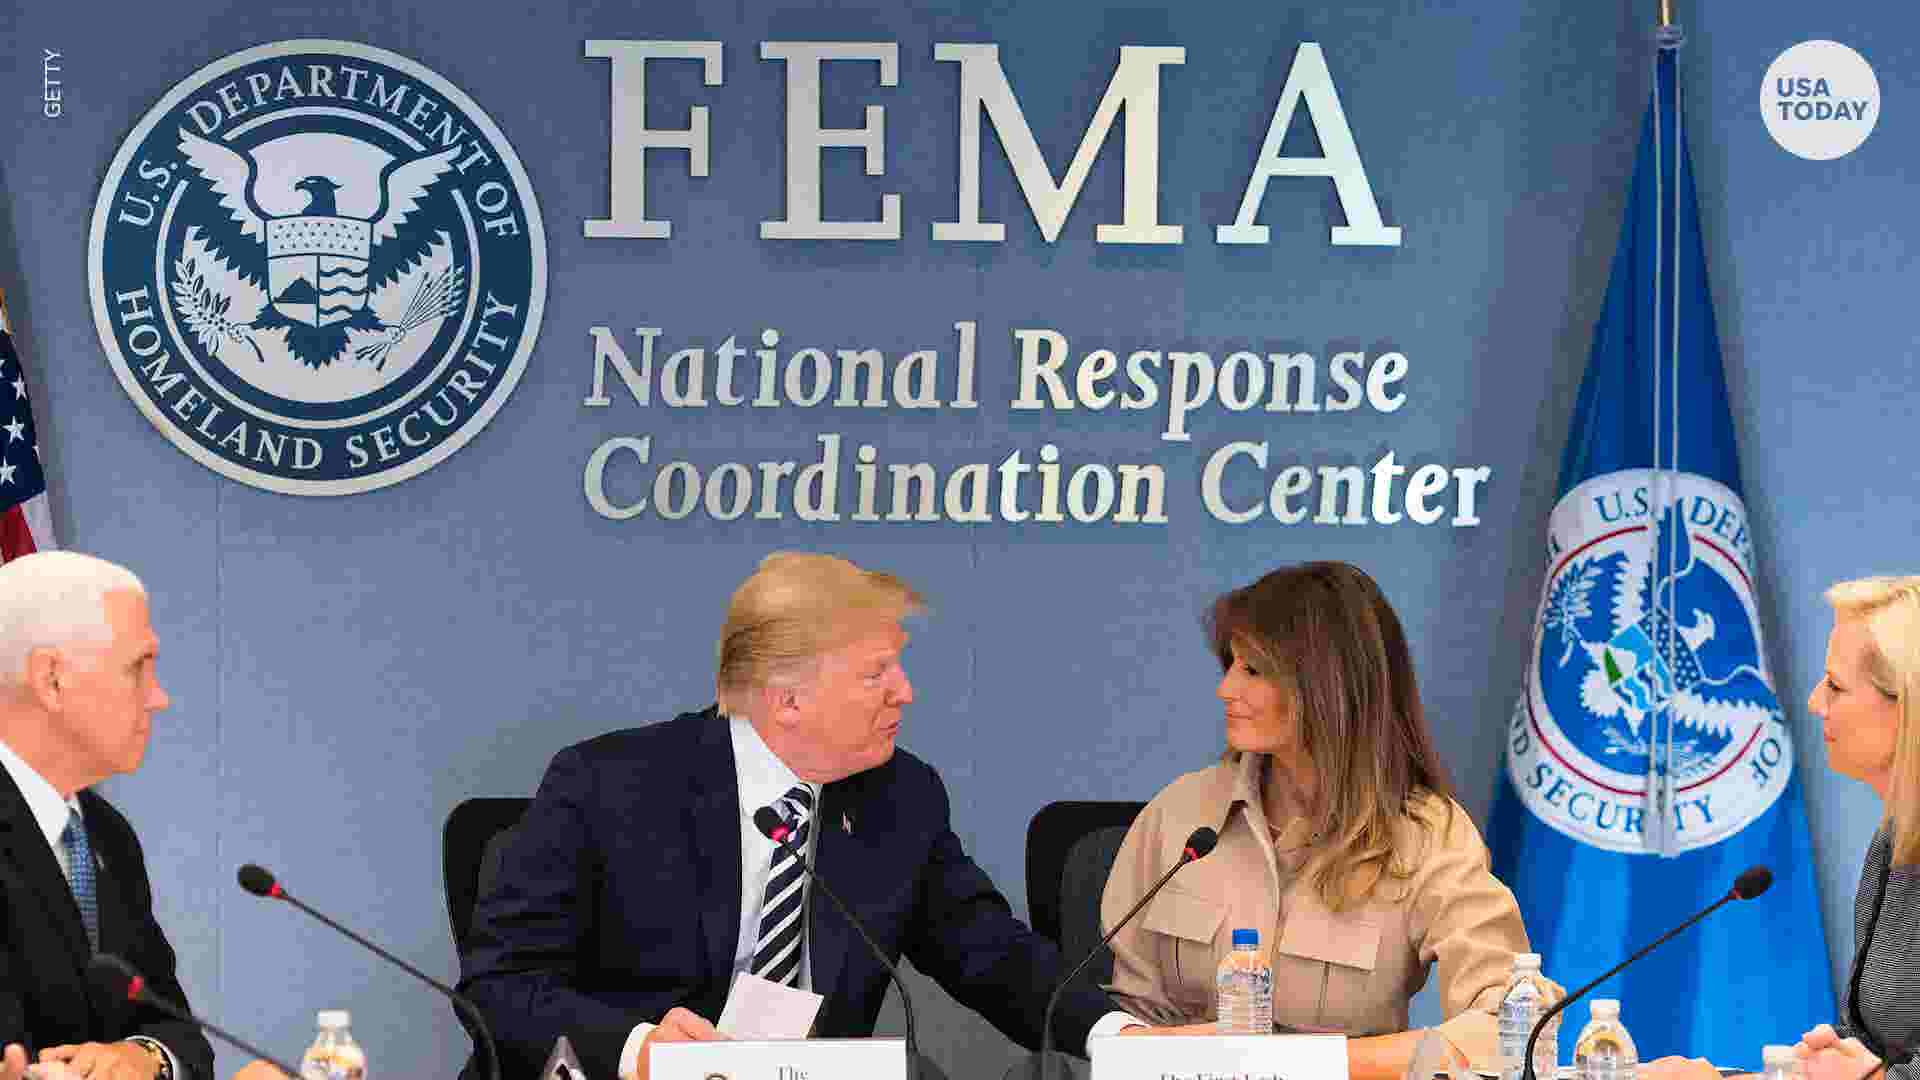 Documents suggest Trump administration moved $10 million from FEMA to ICE